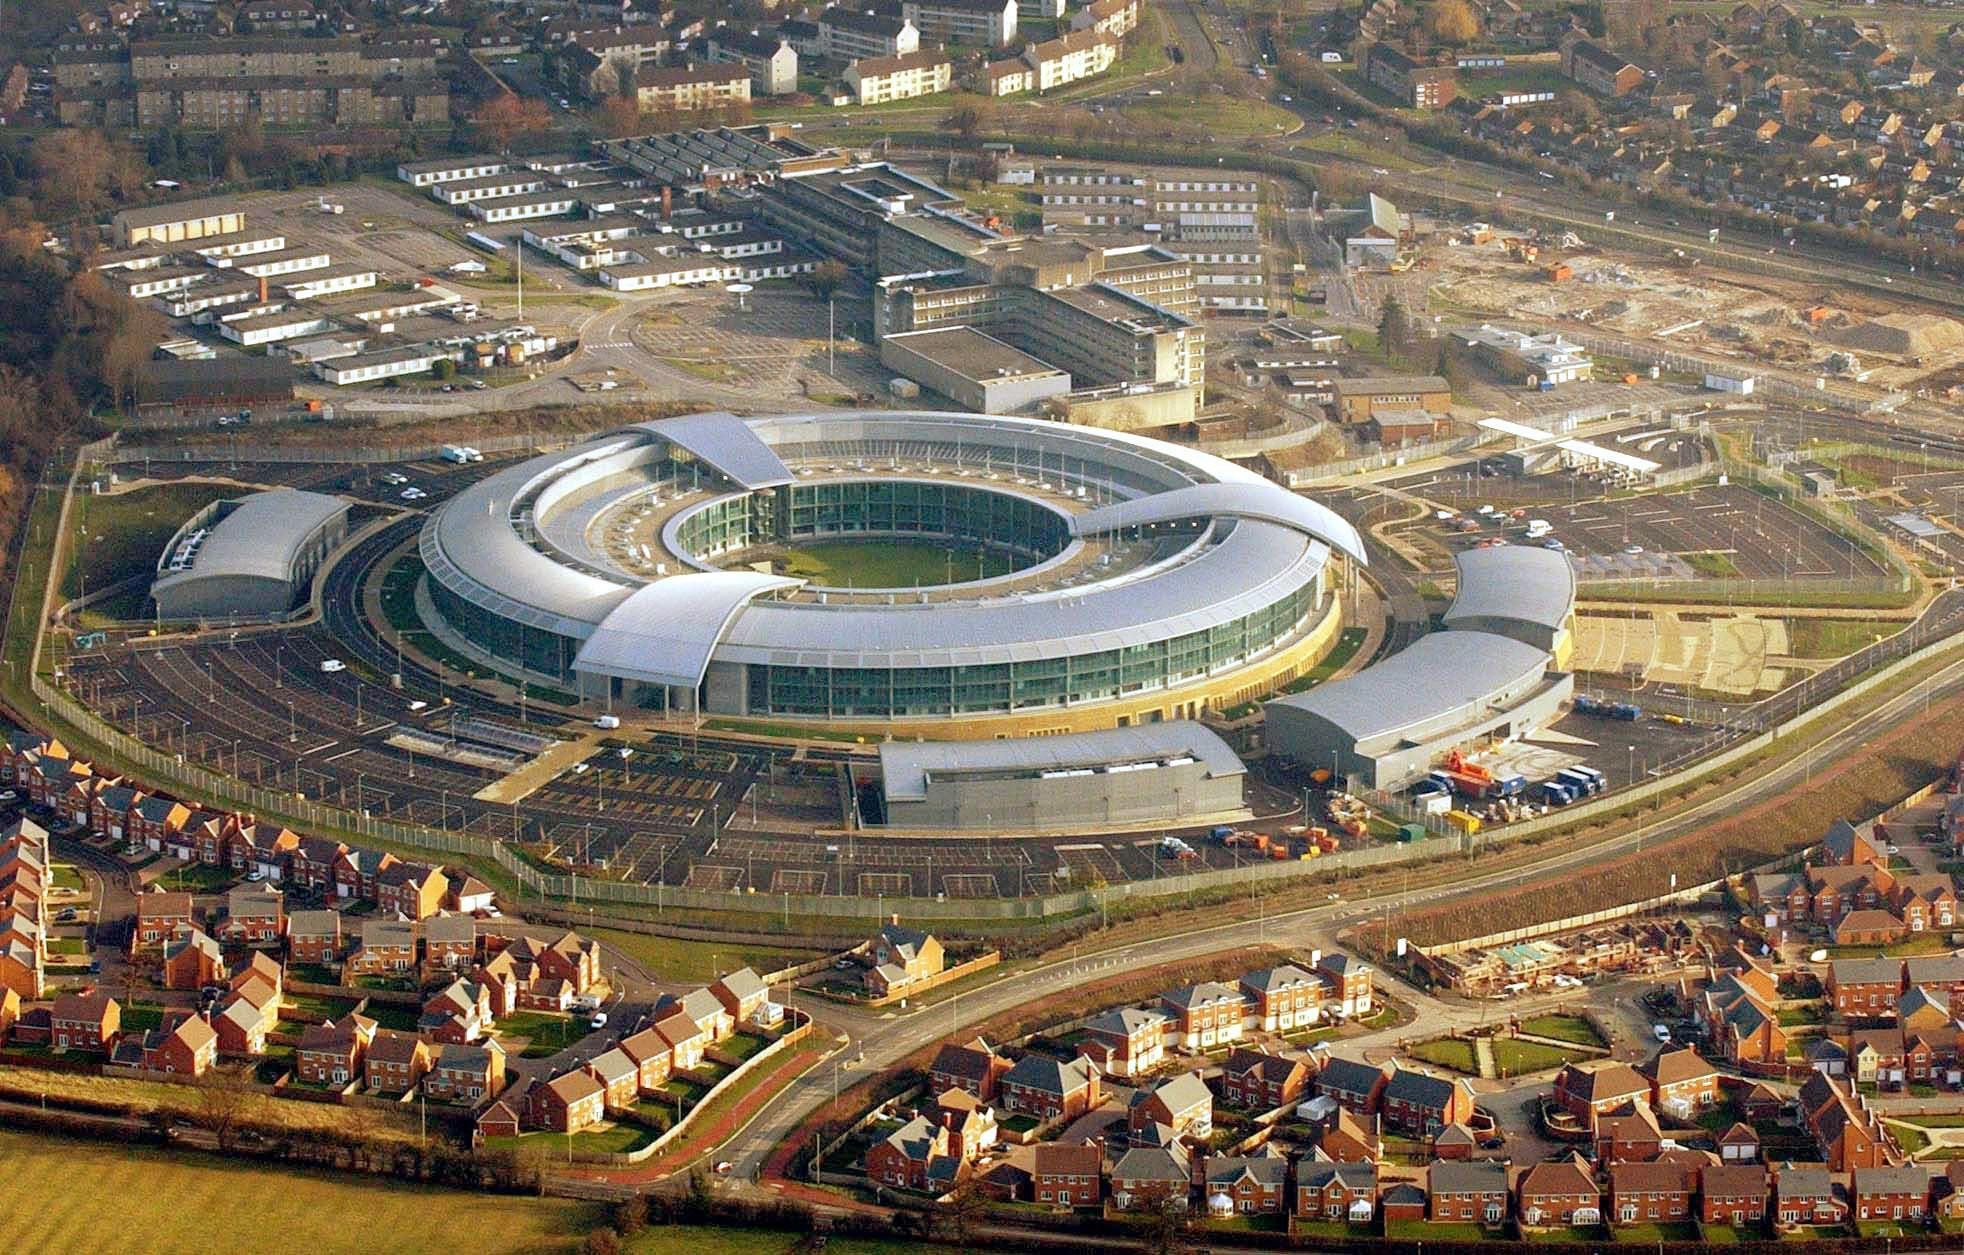 UK Spy Agencies 'Unlawfully' Collected Your Personal Data For Over A